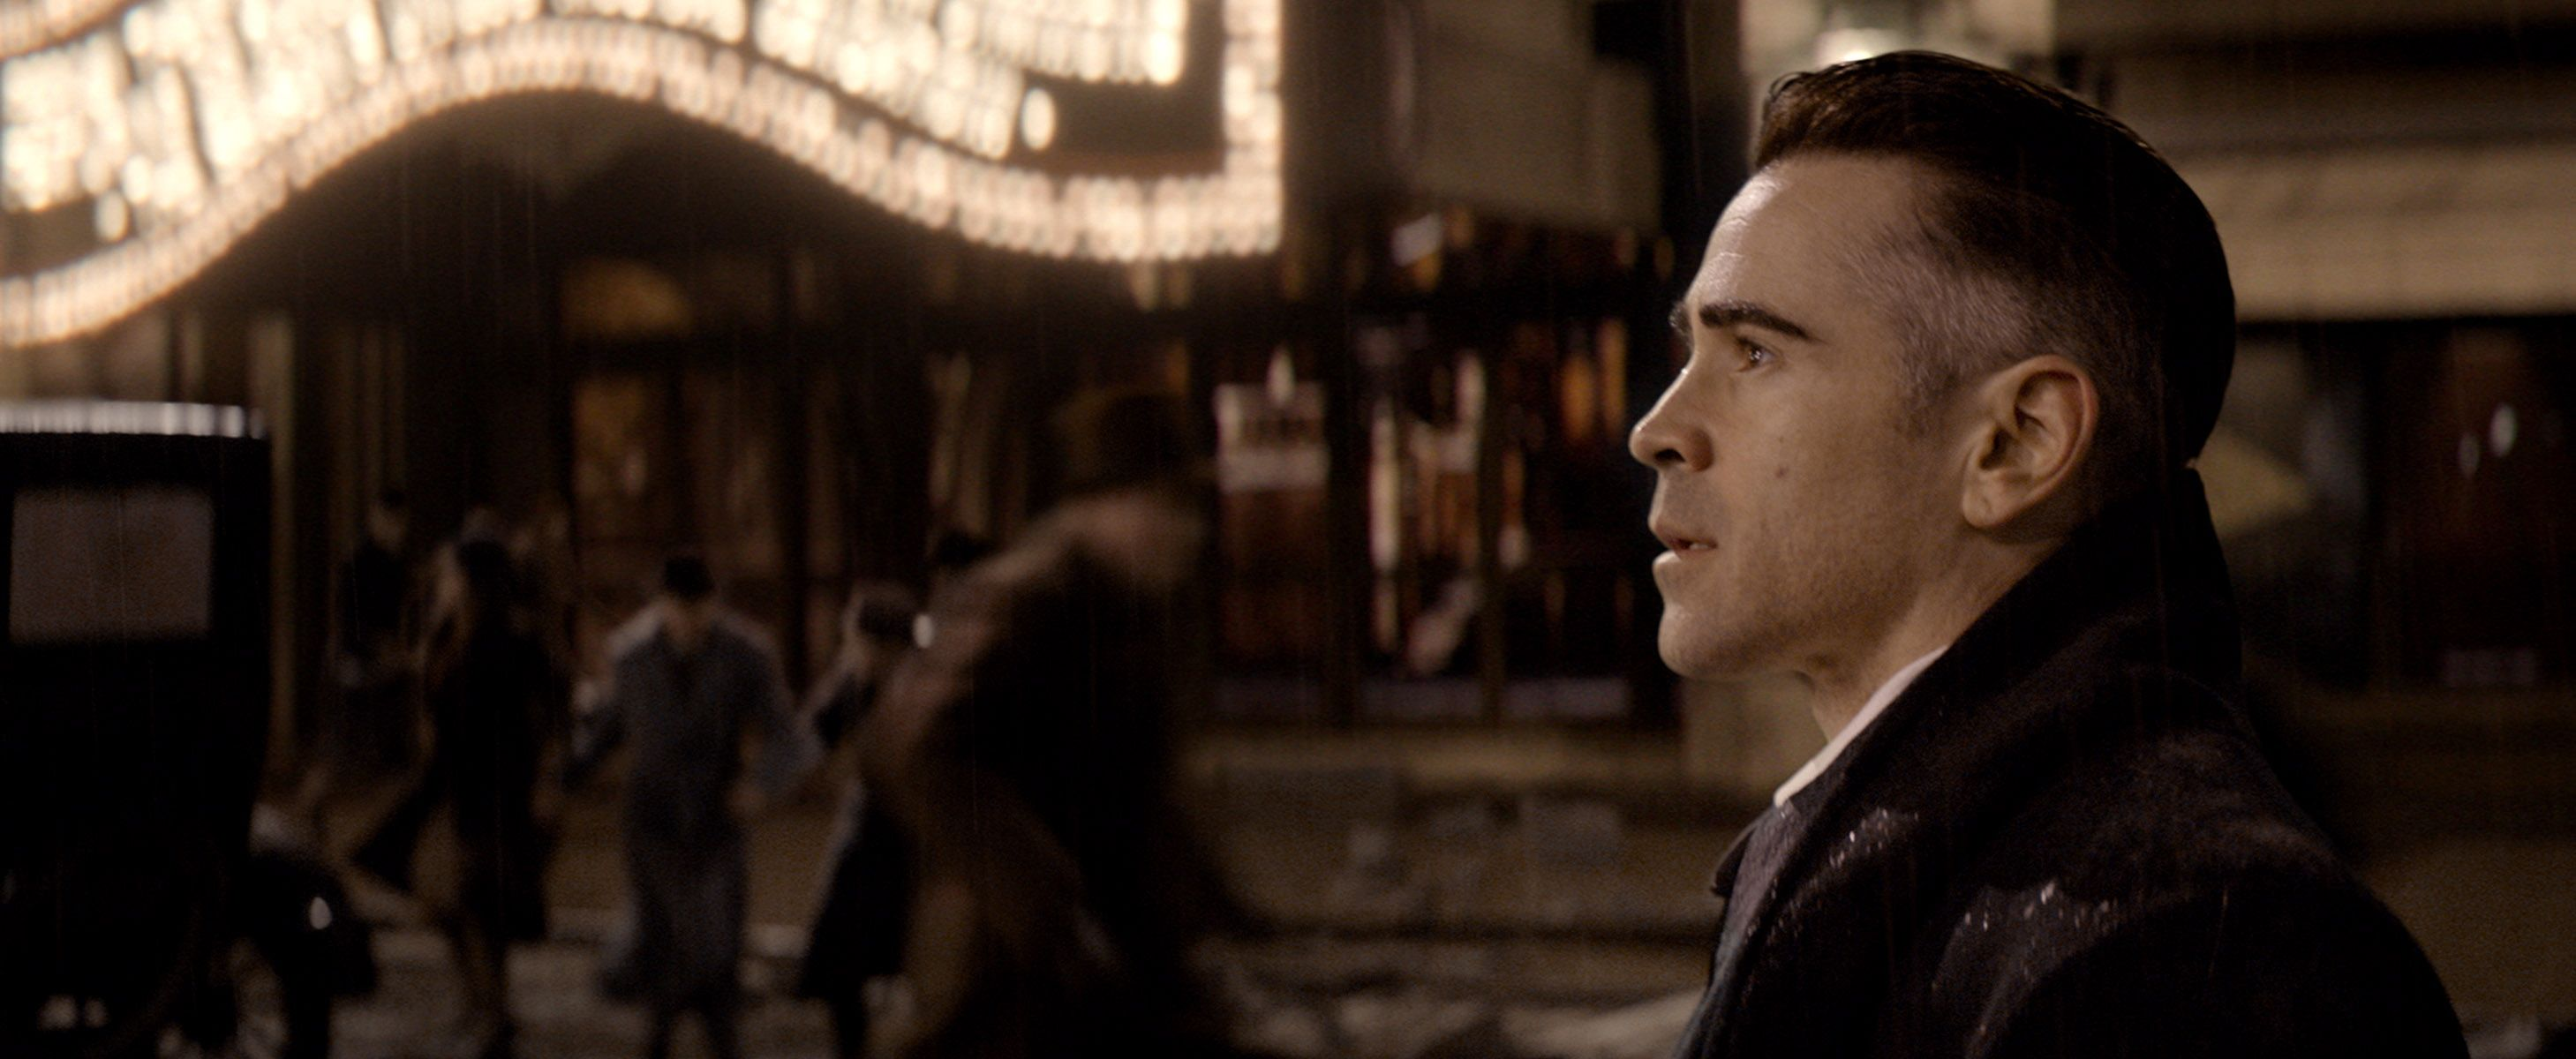 'Fantastic Beasts': Colin Farrell Explains Why He Wanted to Join the 'Potter' Universe